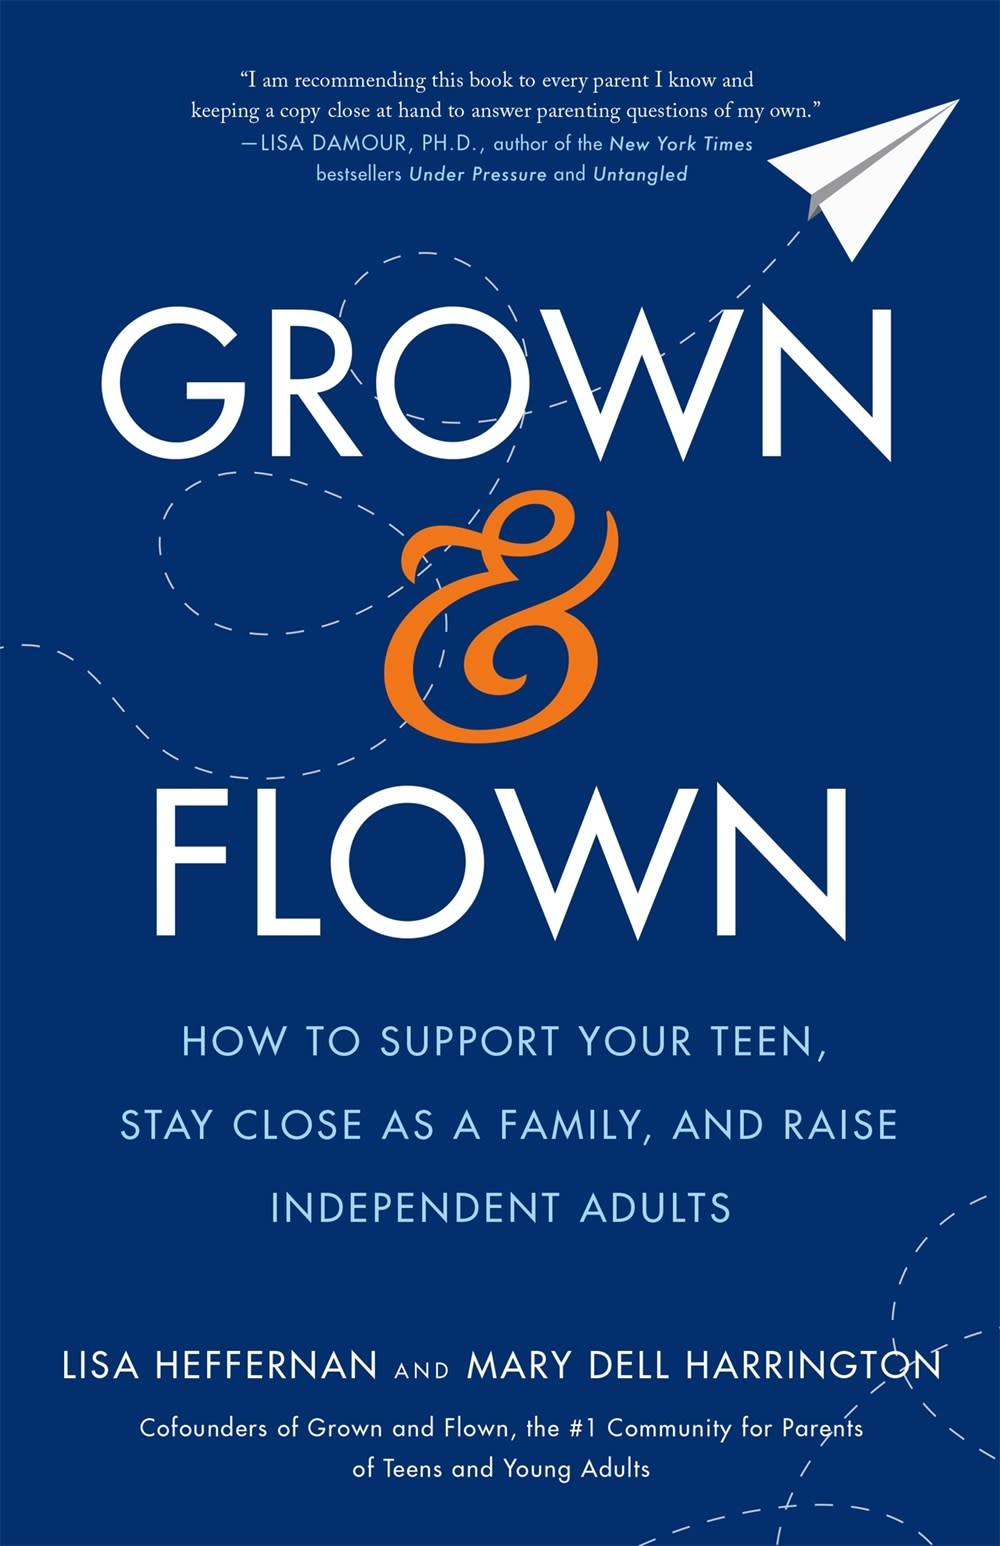 Flatiron Books Grown and Flown: How to Support... Raise Independent Adults